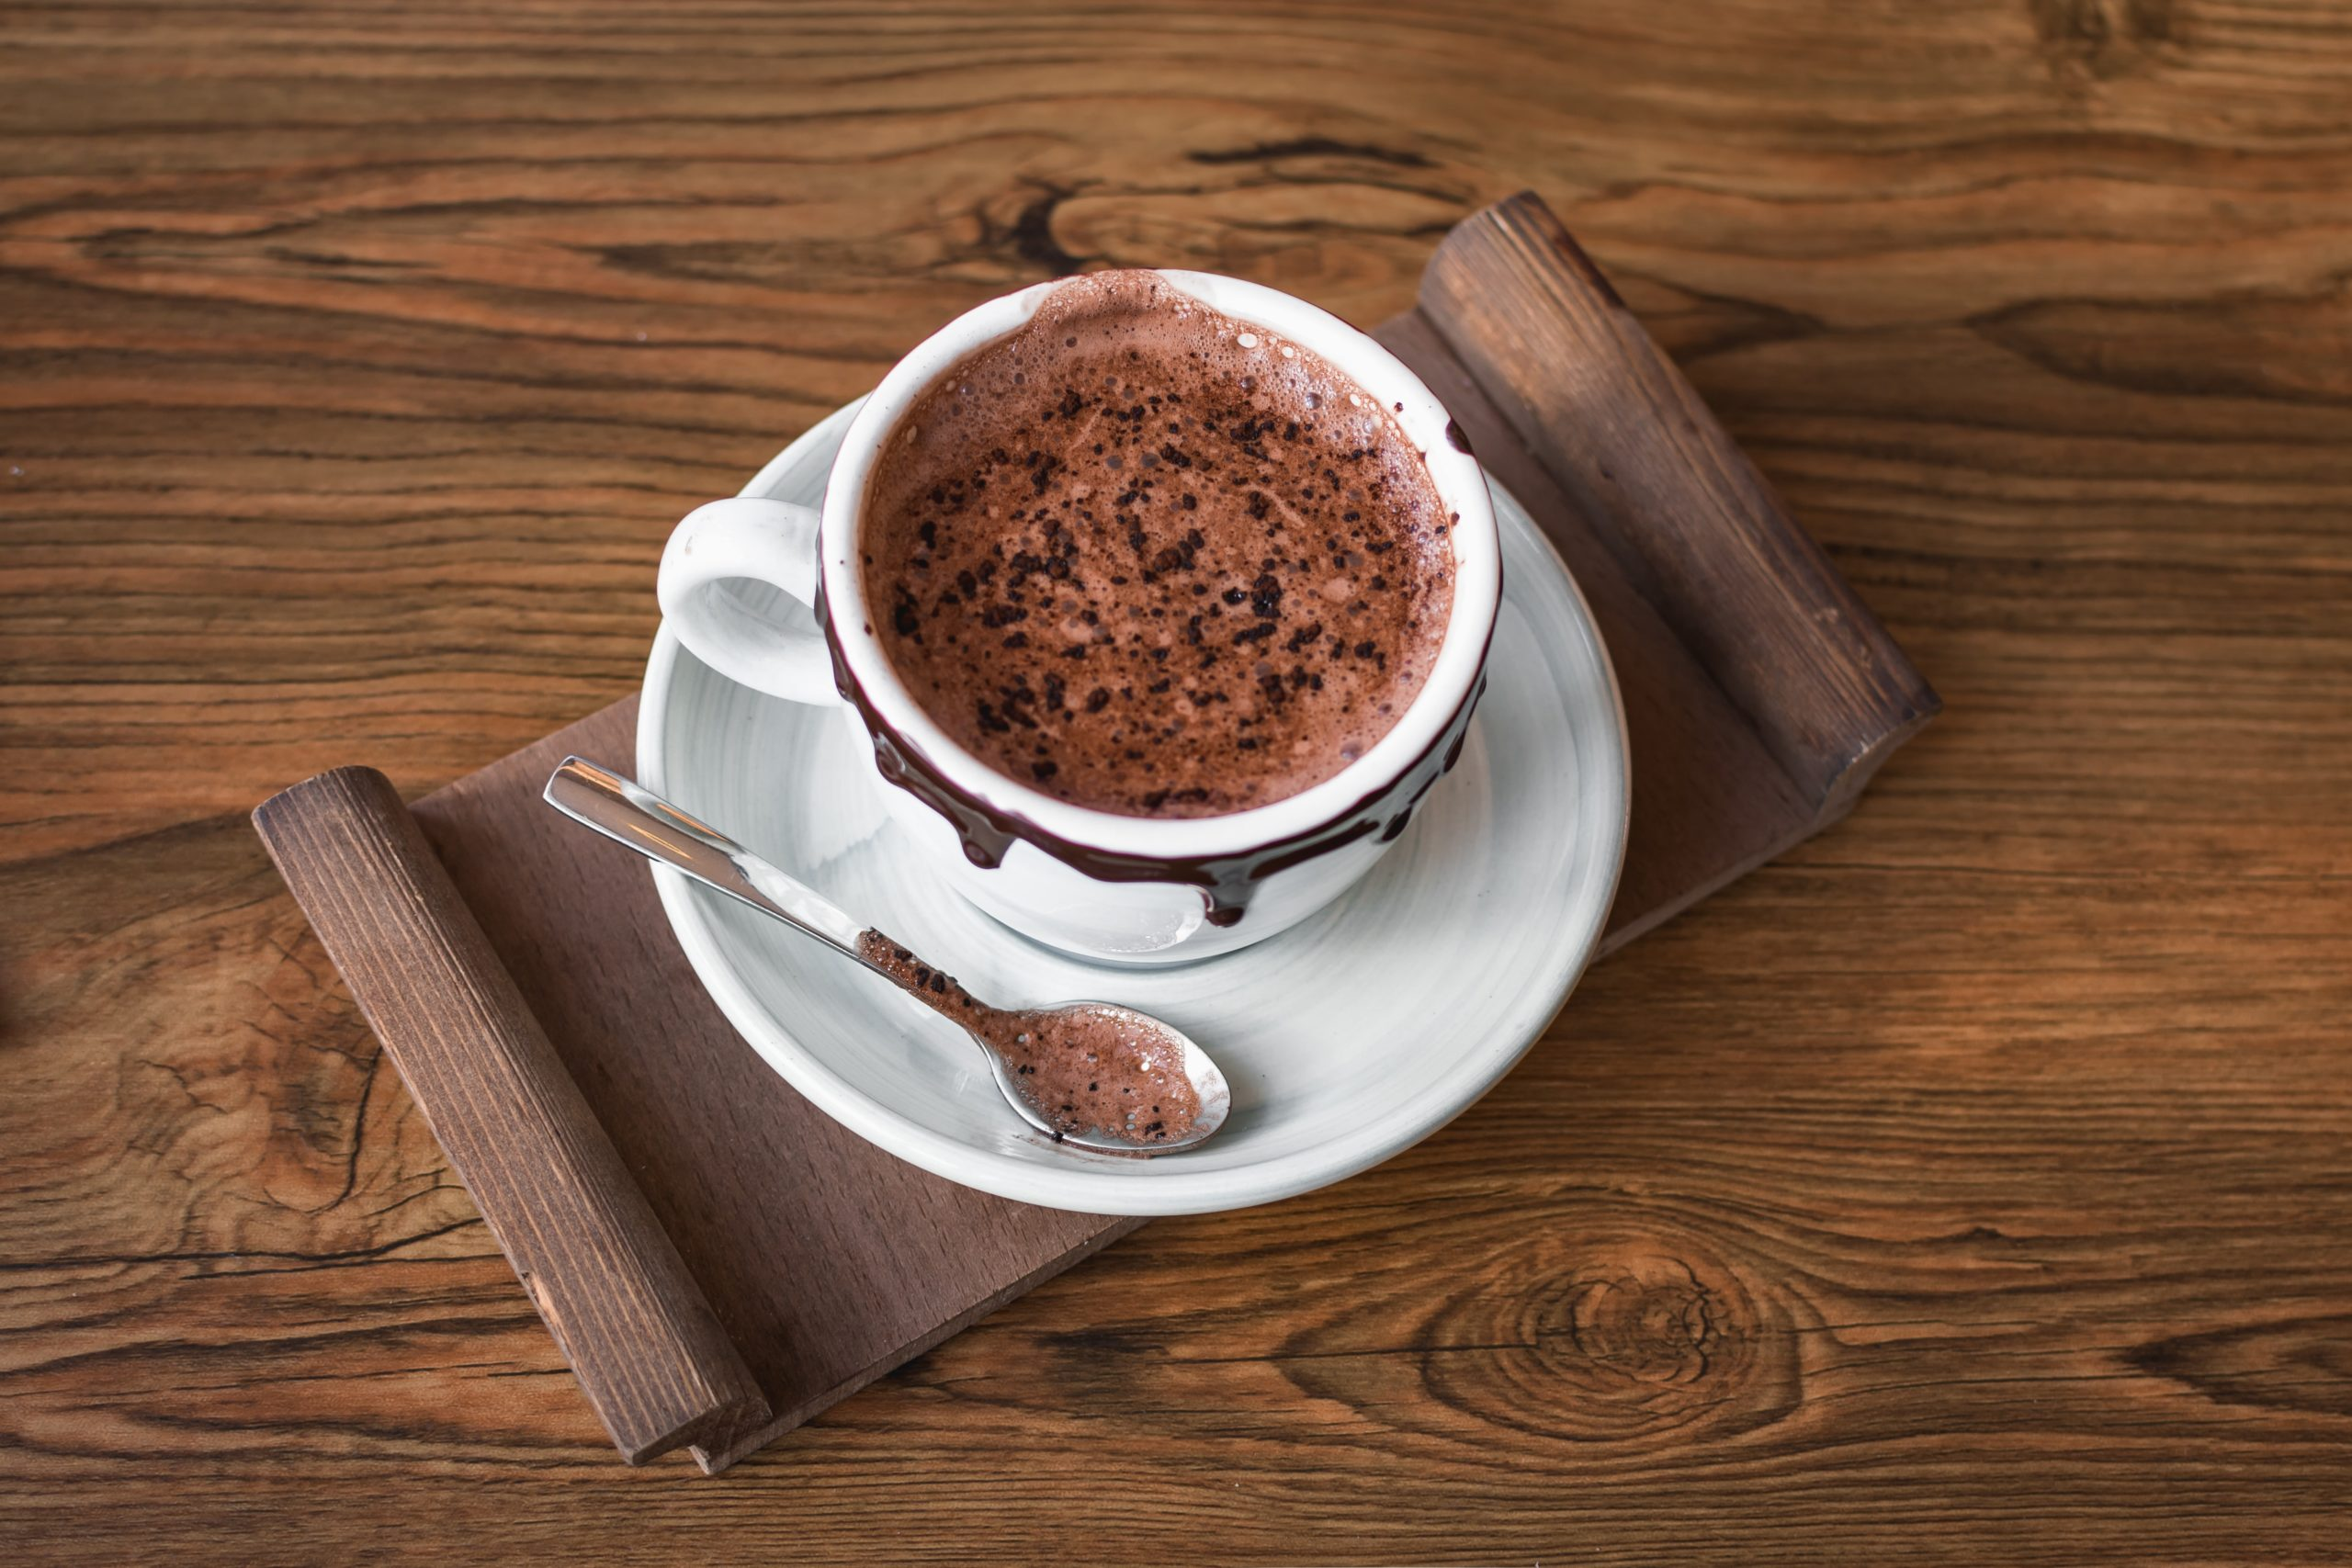 cup of cuppucino sprinkled with cocoa powder